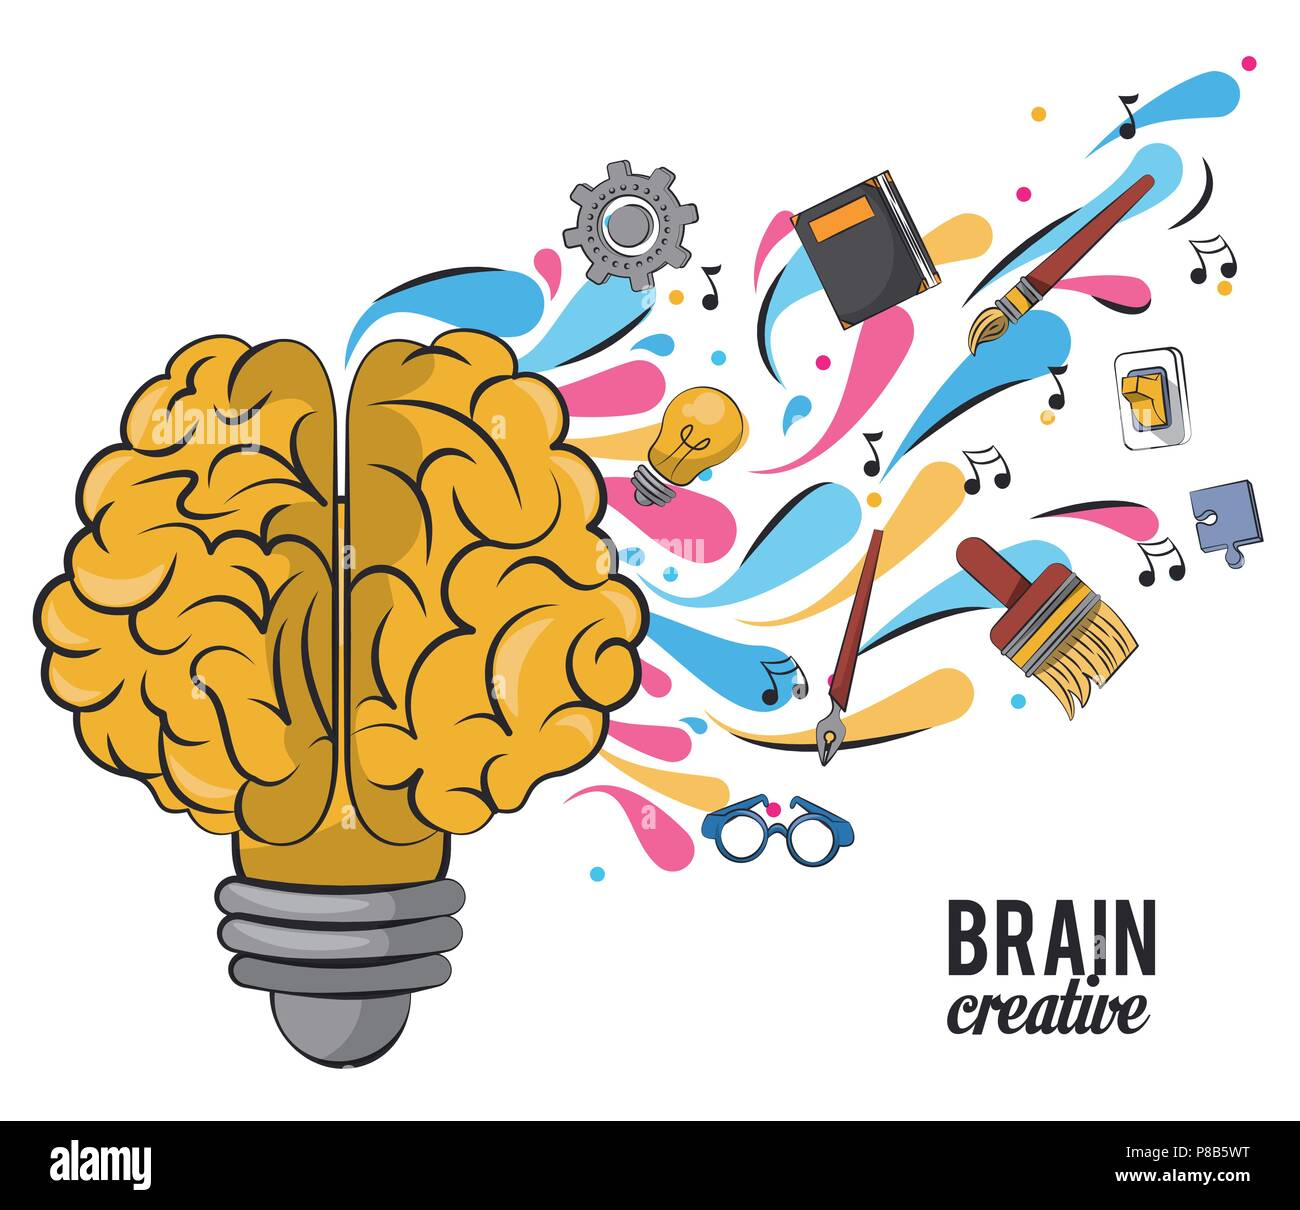 Creative Brain Cartoons Stock Vector Art Illustration